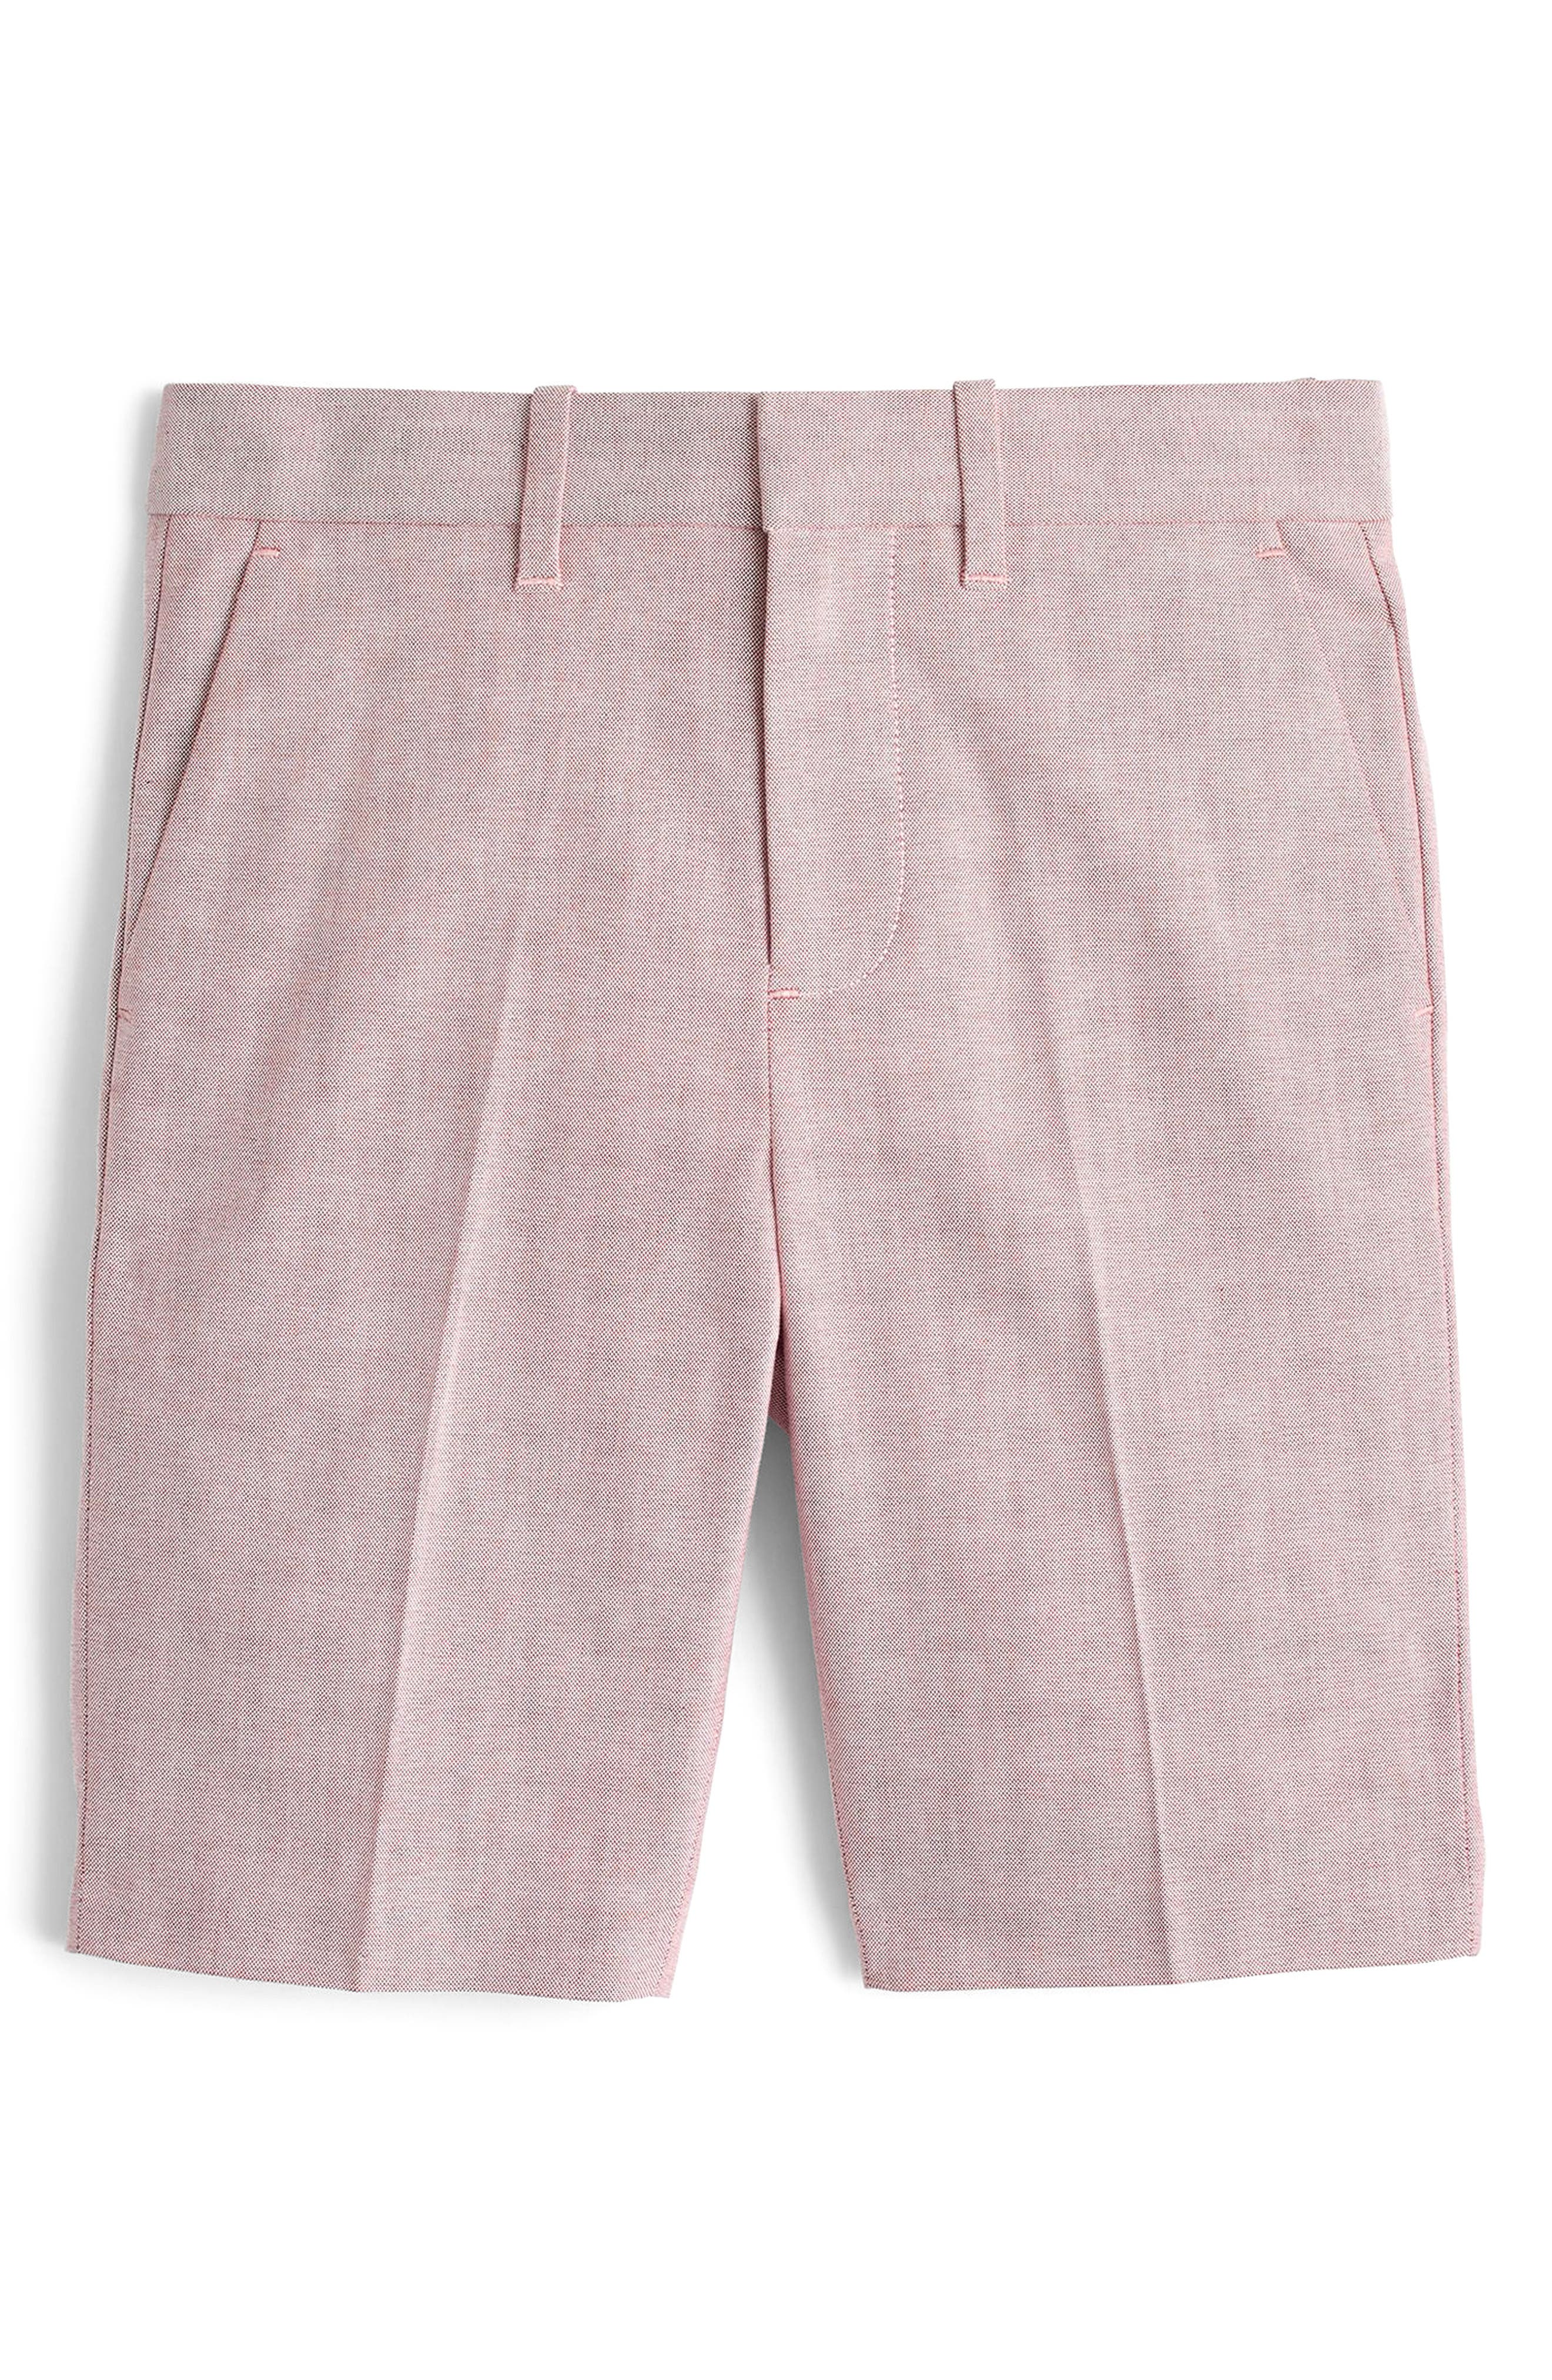 Ludlow Stretch Oxford Suit Shorts,                         Main,                         color, 600